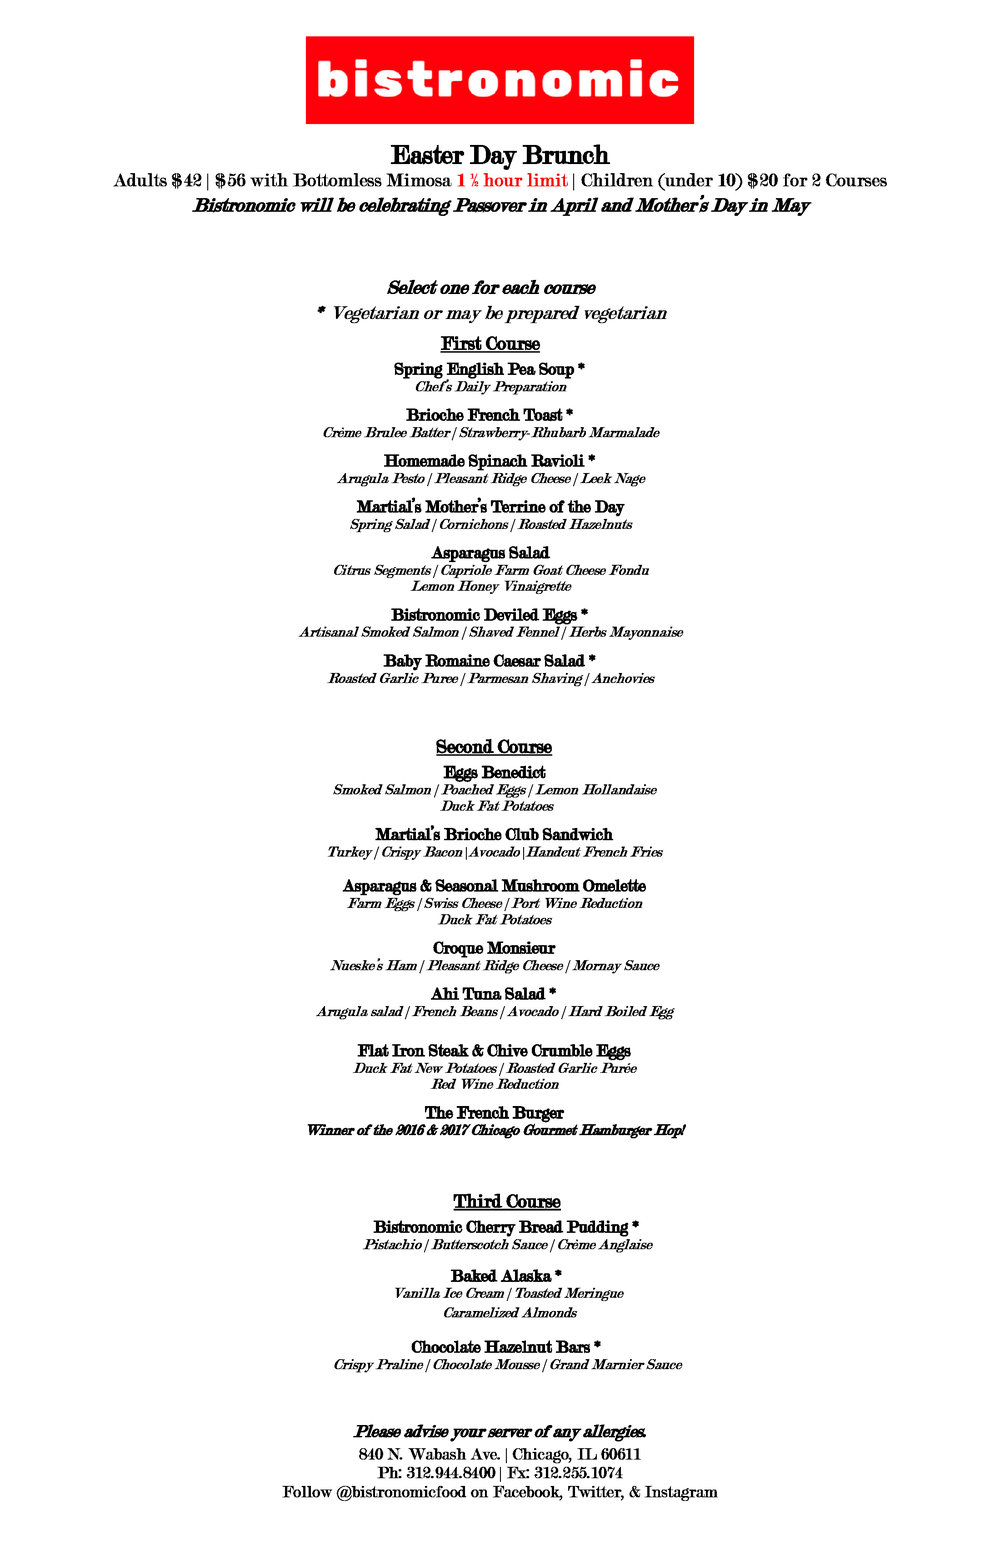 Easter-Day-Brunch-2019-big-menu (1).jpg